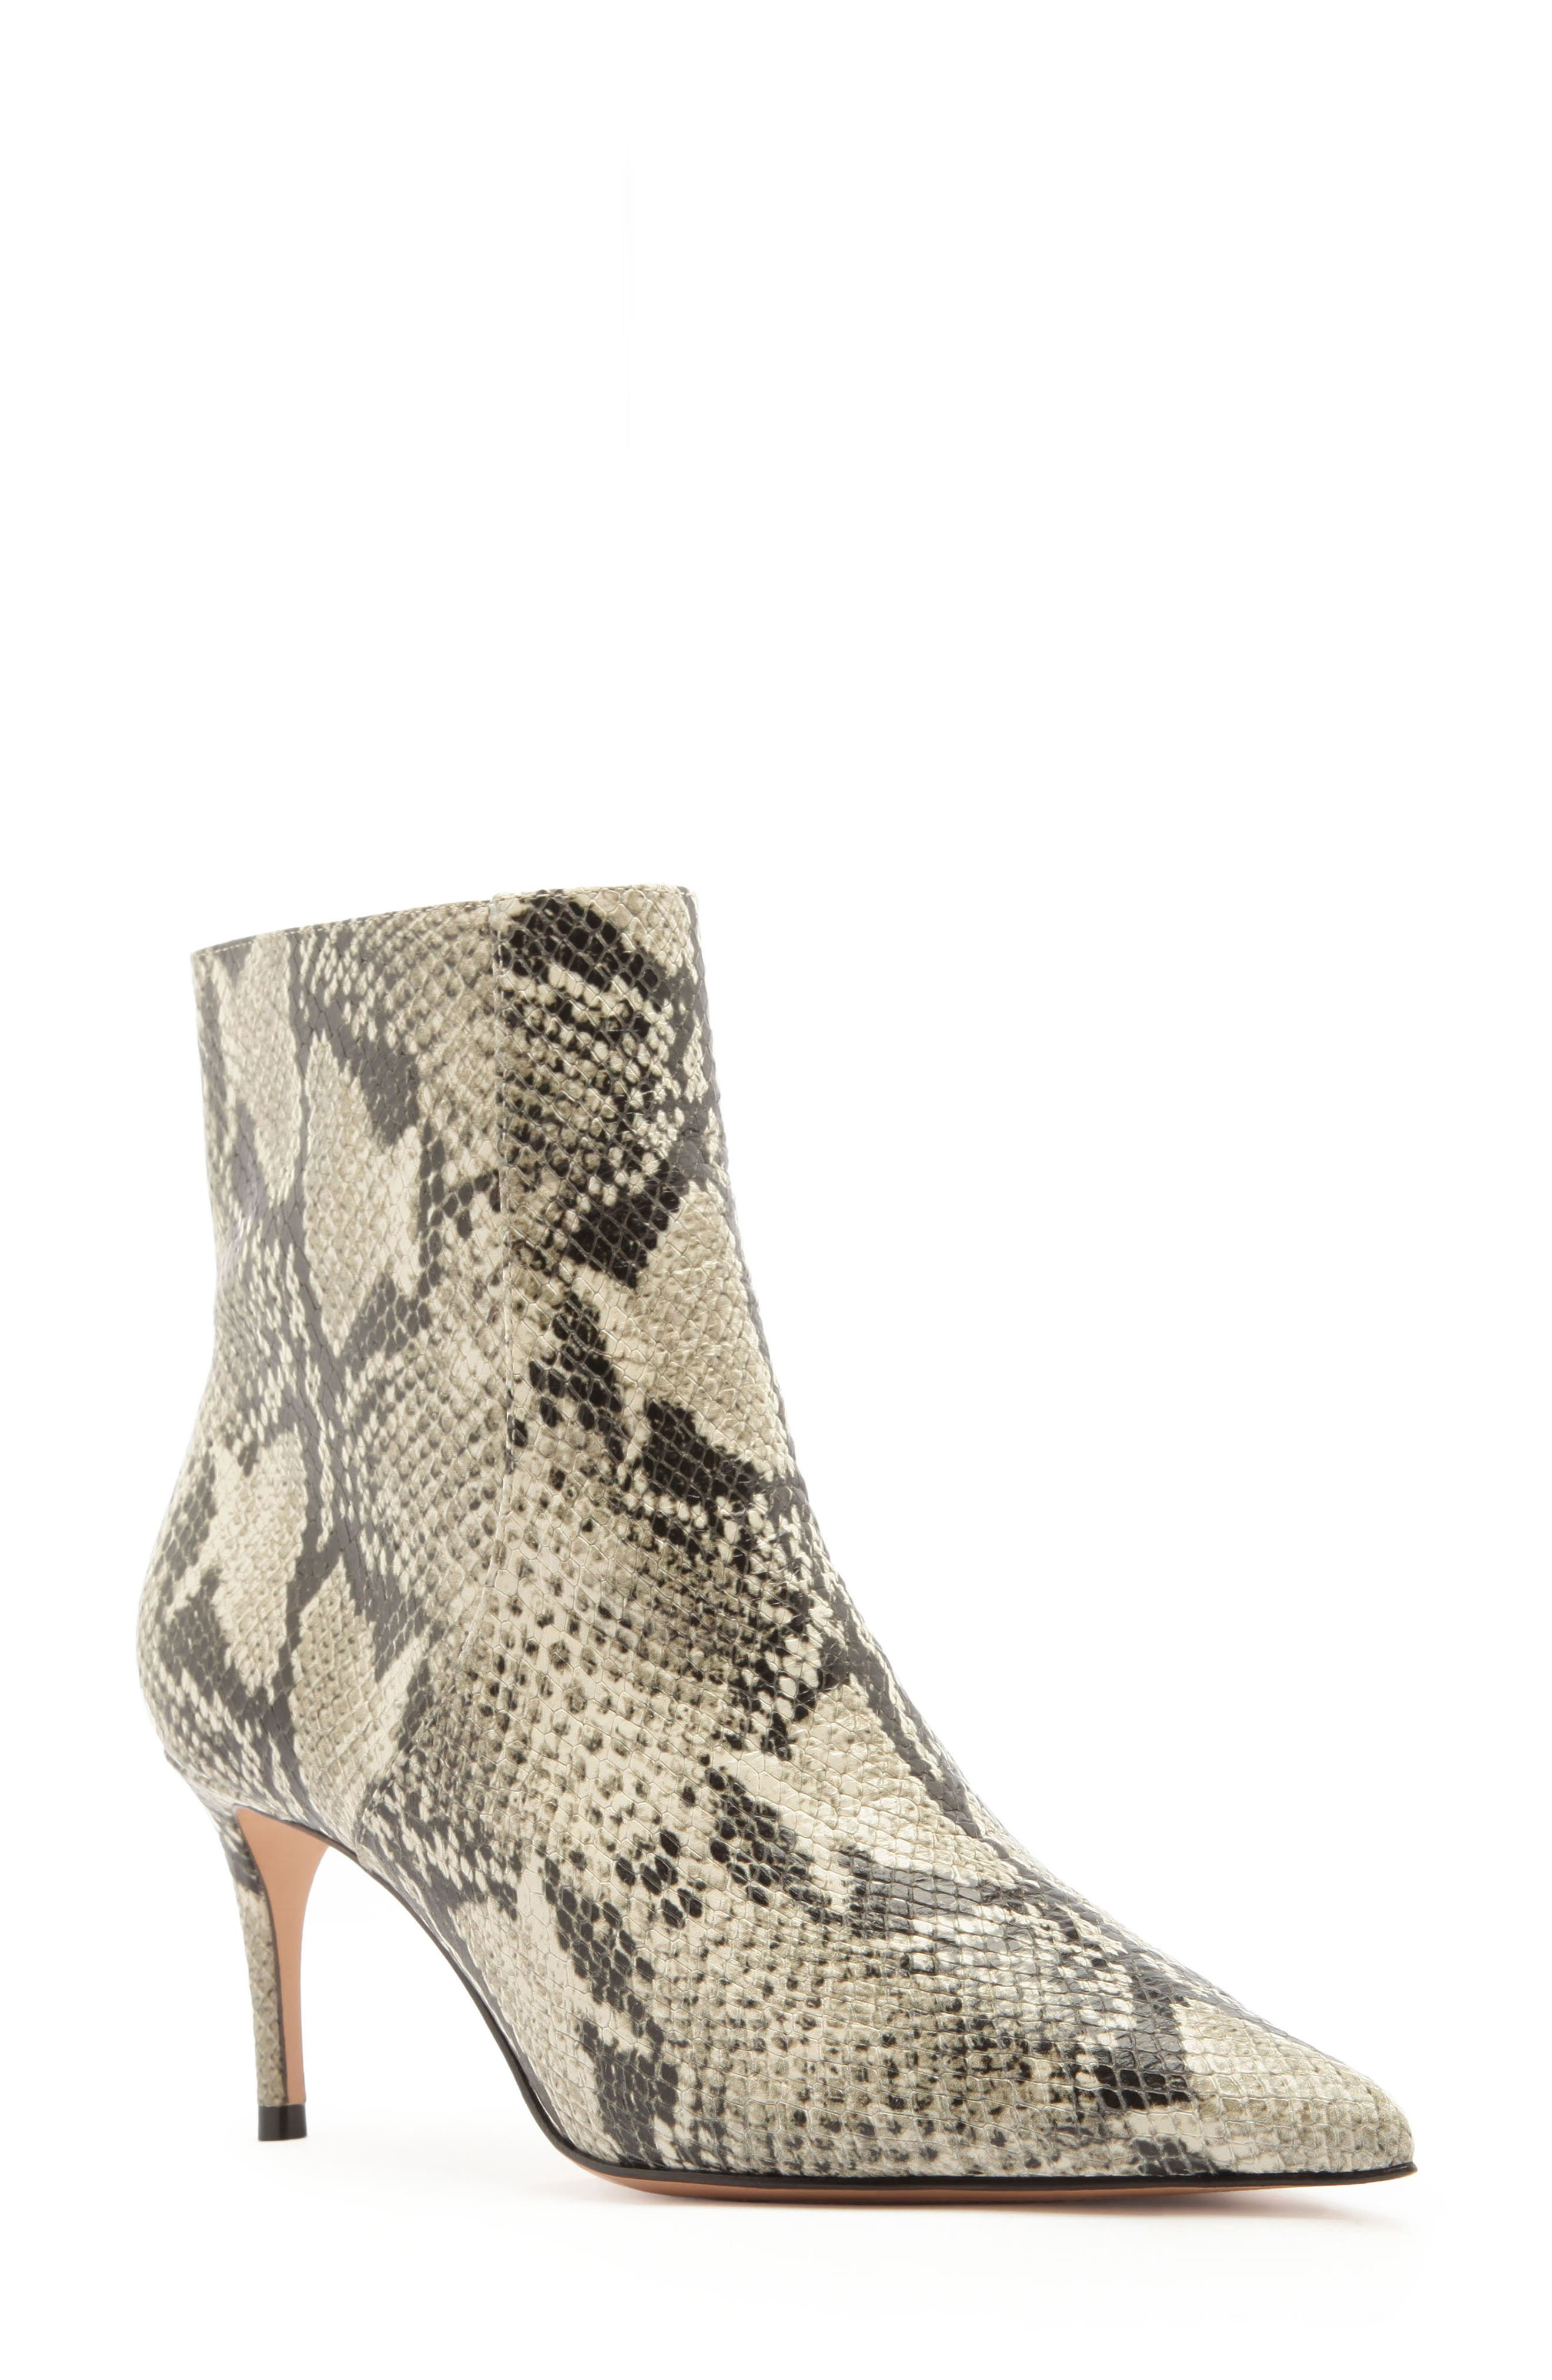 A pointy-toe bootie made with a cushioned footbed is lofted by a svelte heel. Style Name: Schutz Bette Bootie (Women). Style Number: 5430274. Available in stores.